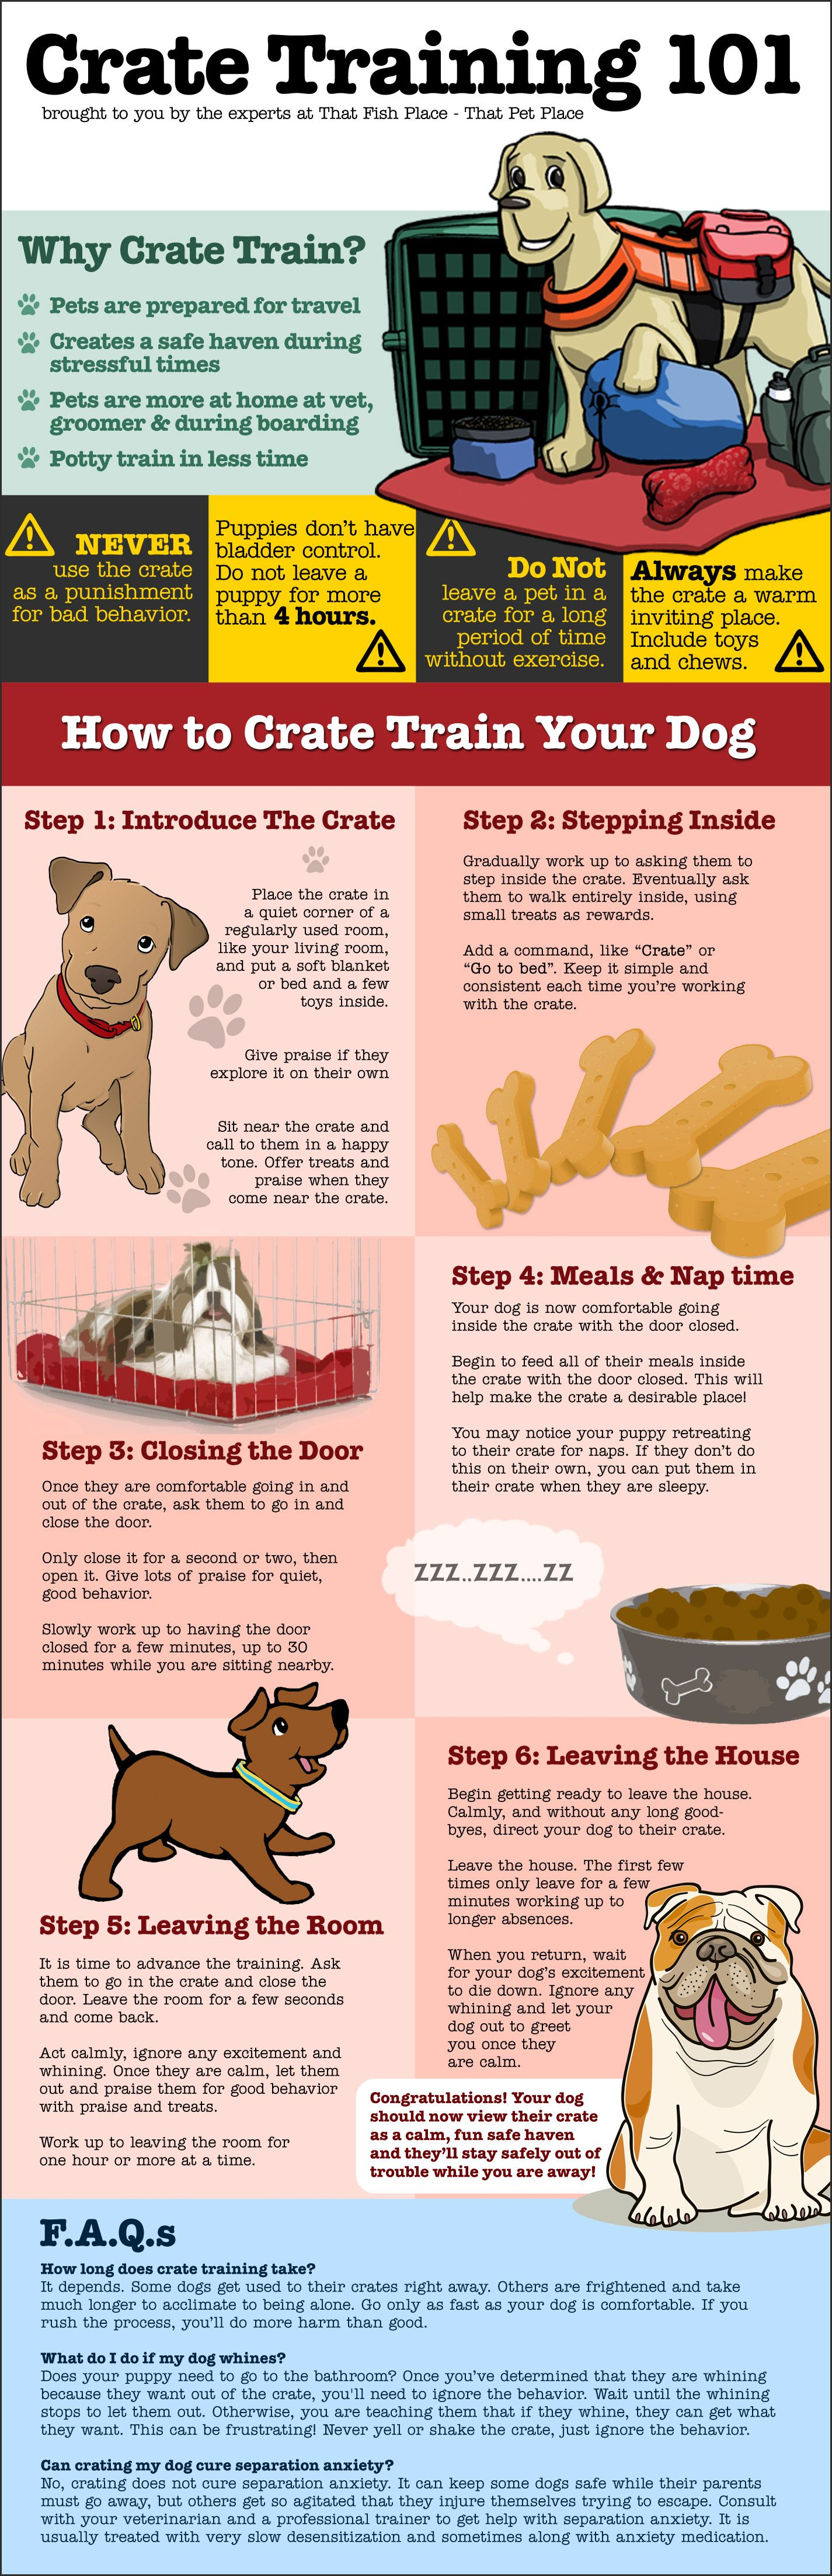 Crate Training 101 Thatpetplace Com The Crate Some Pet Parents